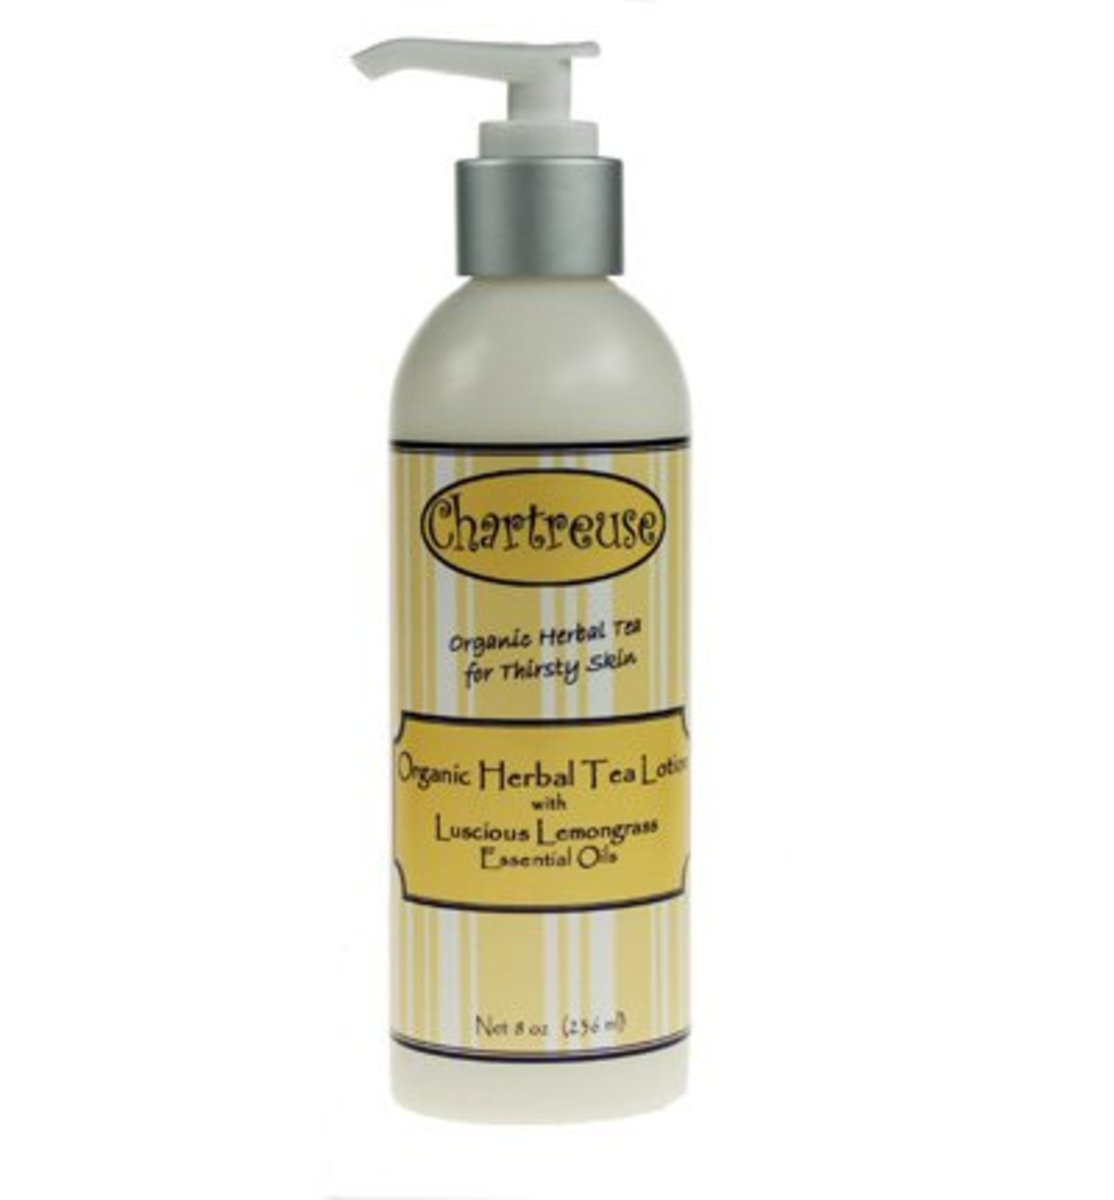 Up Close: Organic Herbal Tea Lotion from Chartreuse!